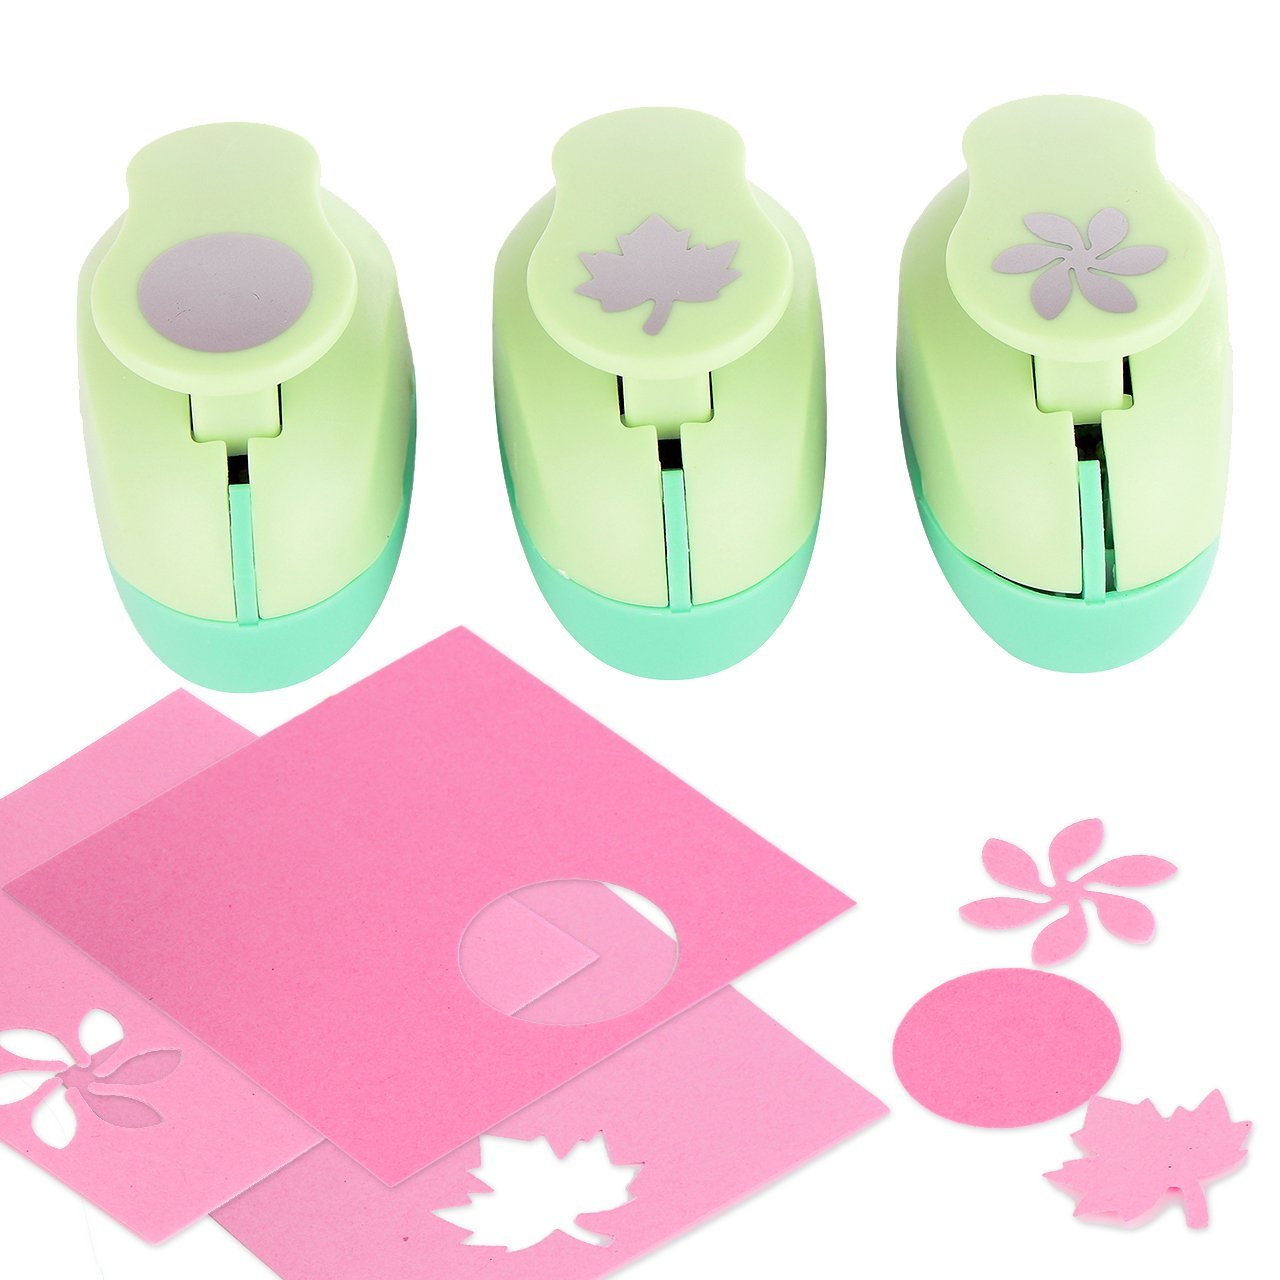 Paper Punch Hole Puncher -- (3 PACK Circle Maple Leaf Retro Flower) -- Personalized Paper Craft Punchers Shapes Set -- For Scrapbook Engraving Kids Artwork -- Greeting Card Making DIY Crafts